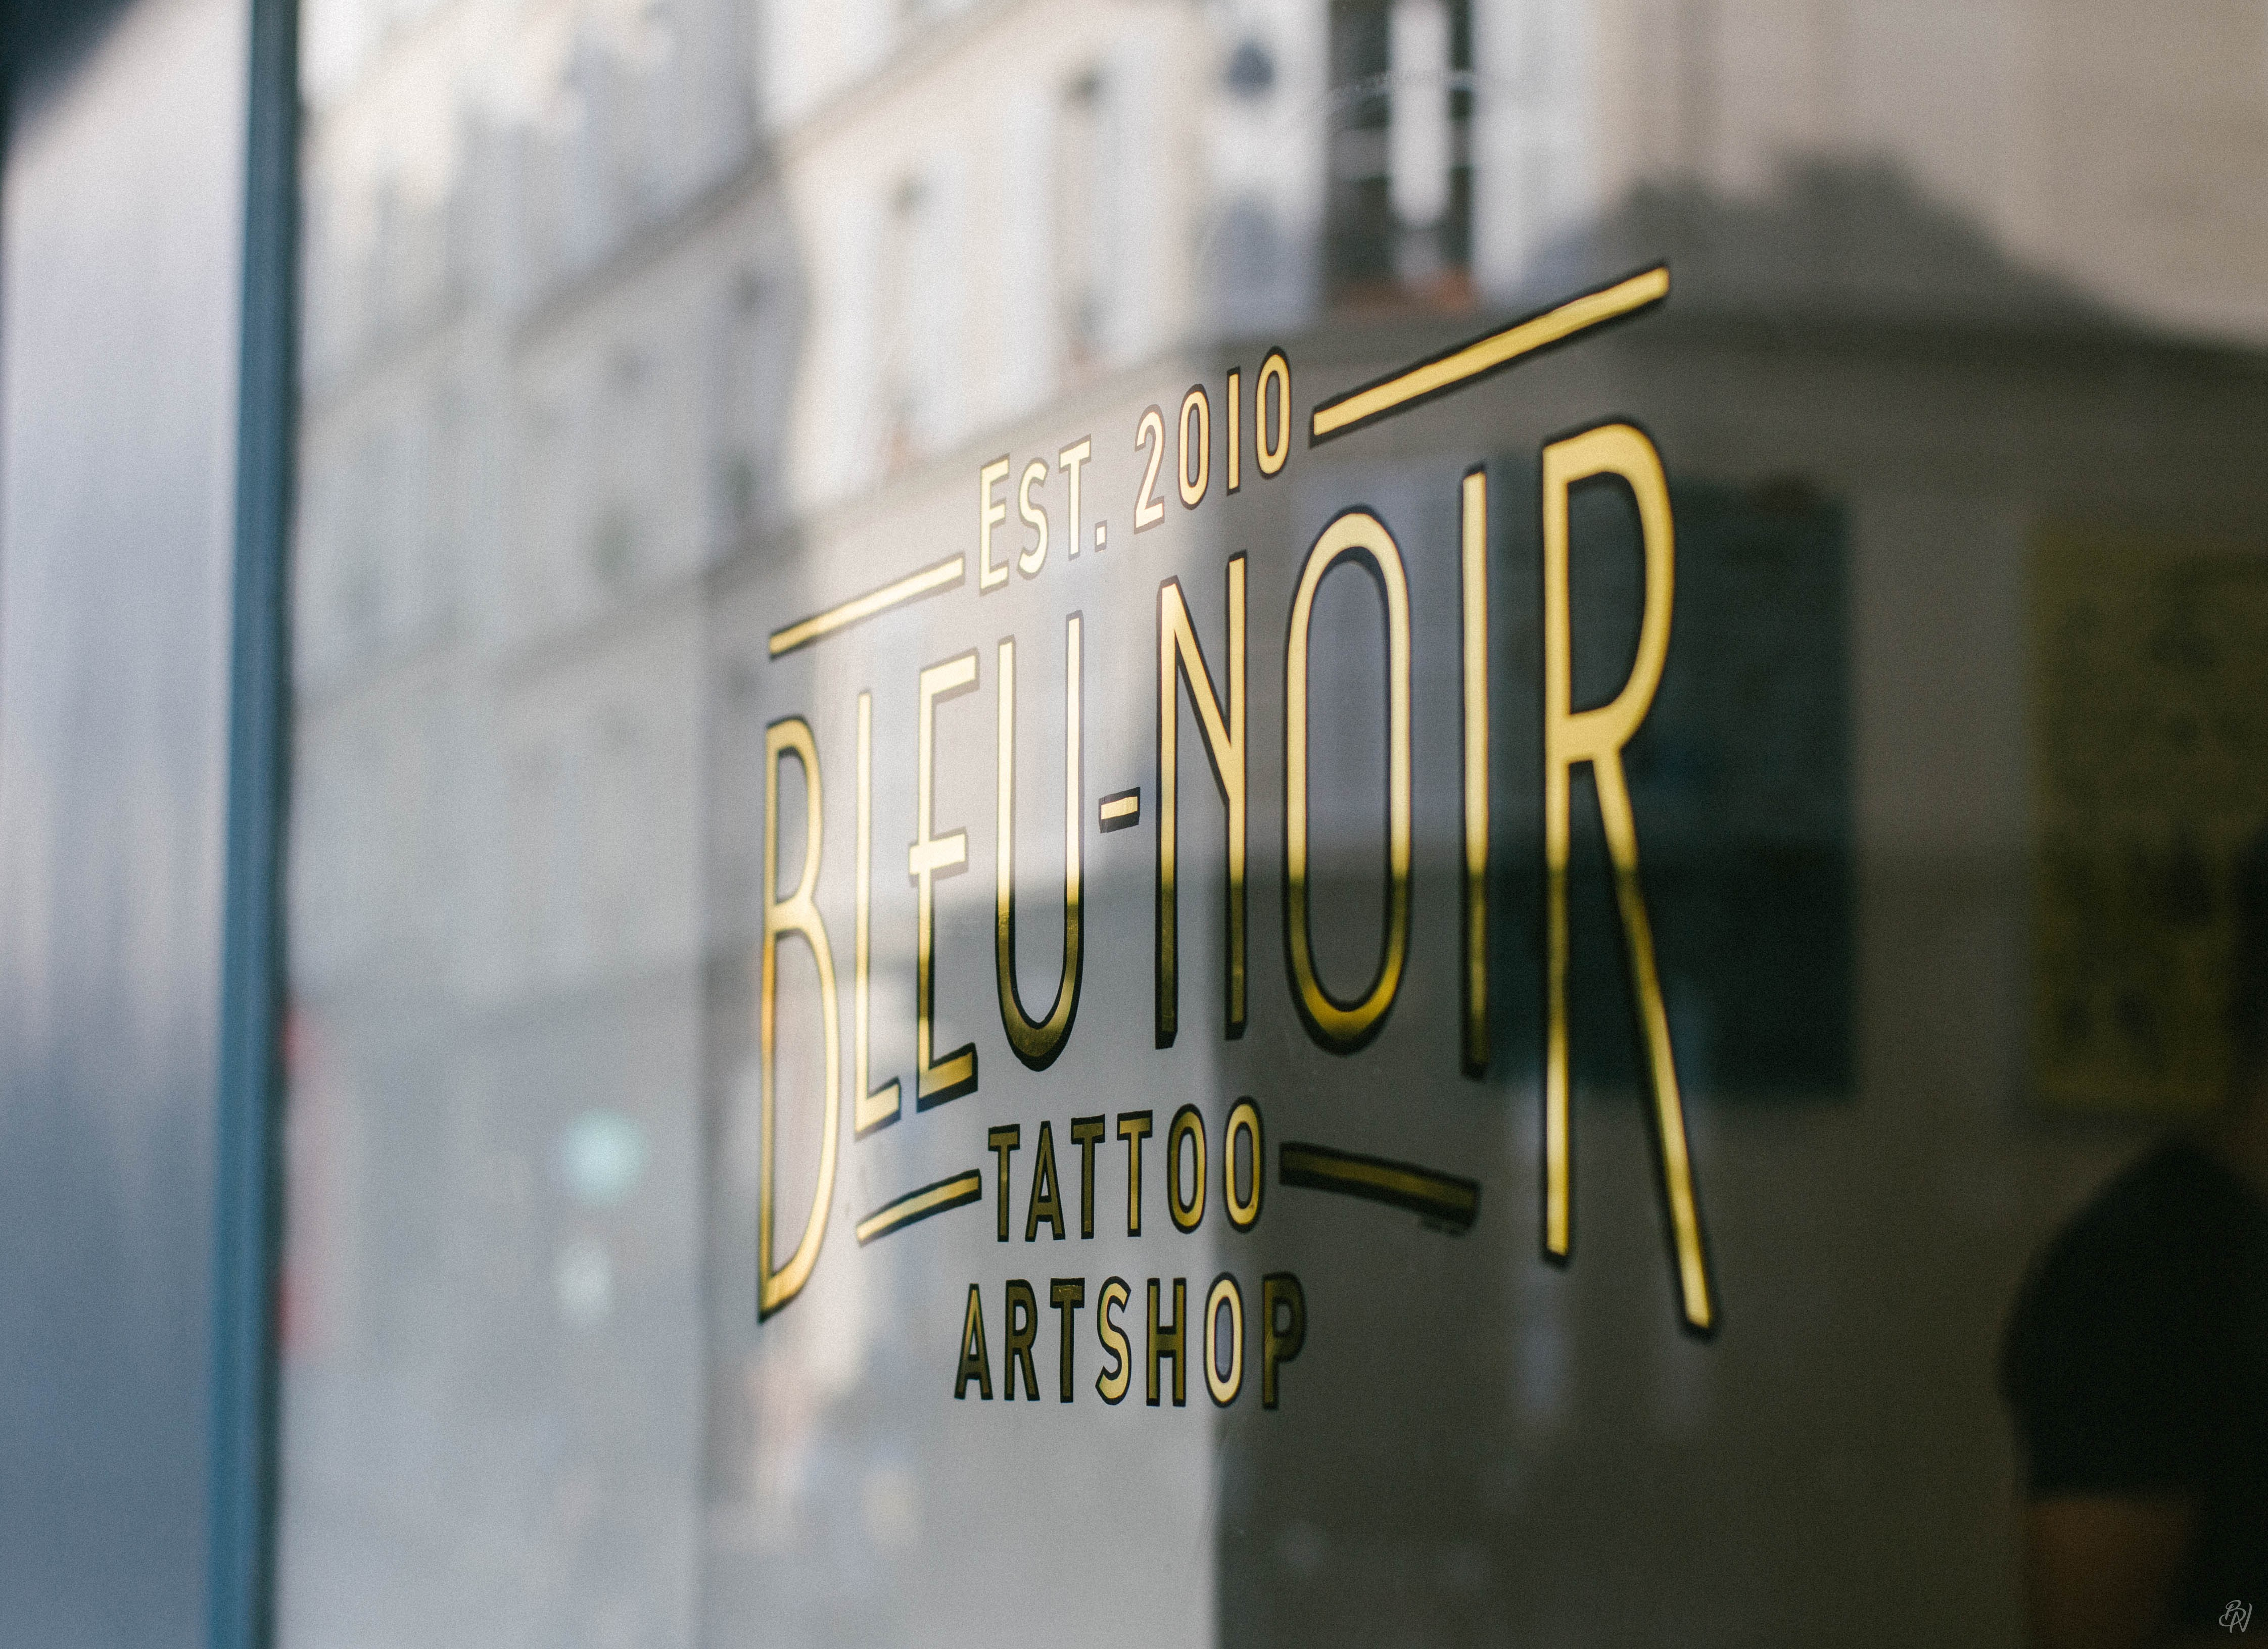 Bleu Noir Tattoo Les Abbesses Paris 18e